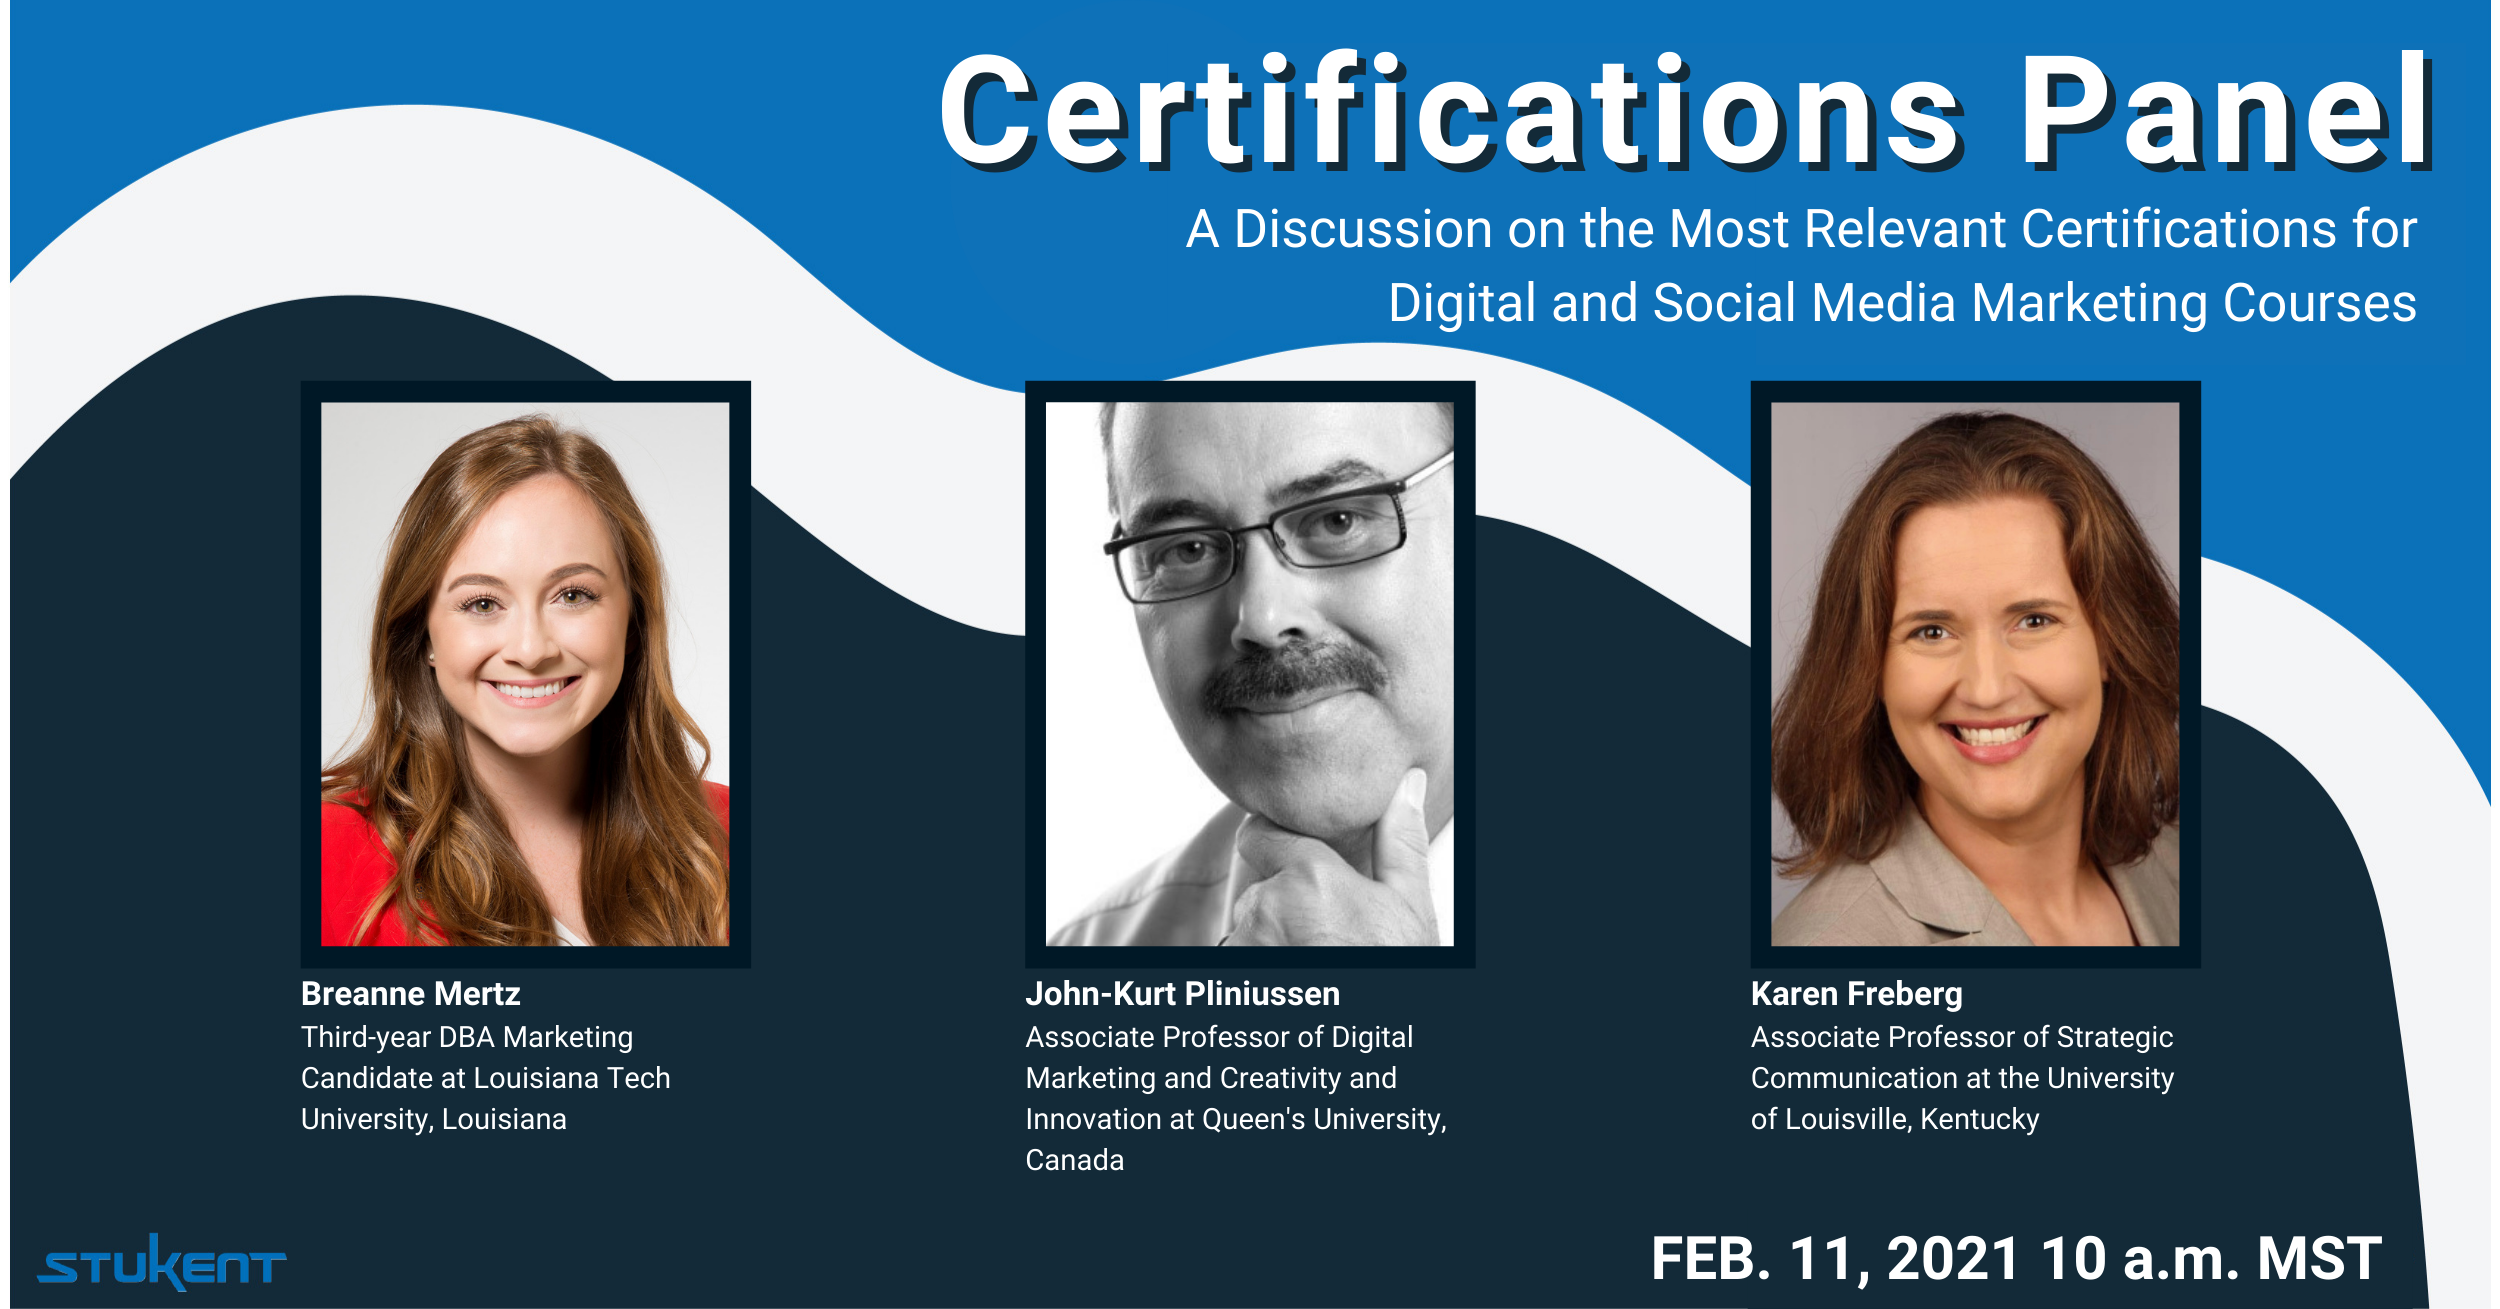 Certifications Panel: A Discussion on the Most Relevant Certifications for Digital & Social Media Marketing Courses